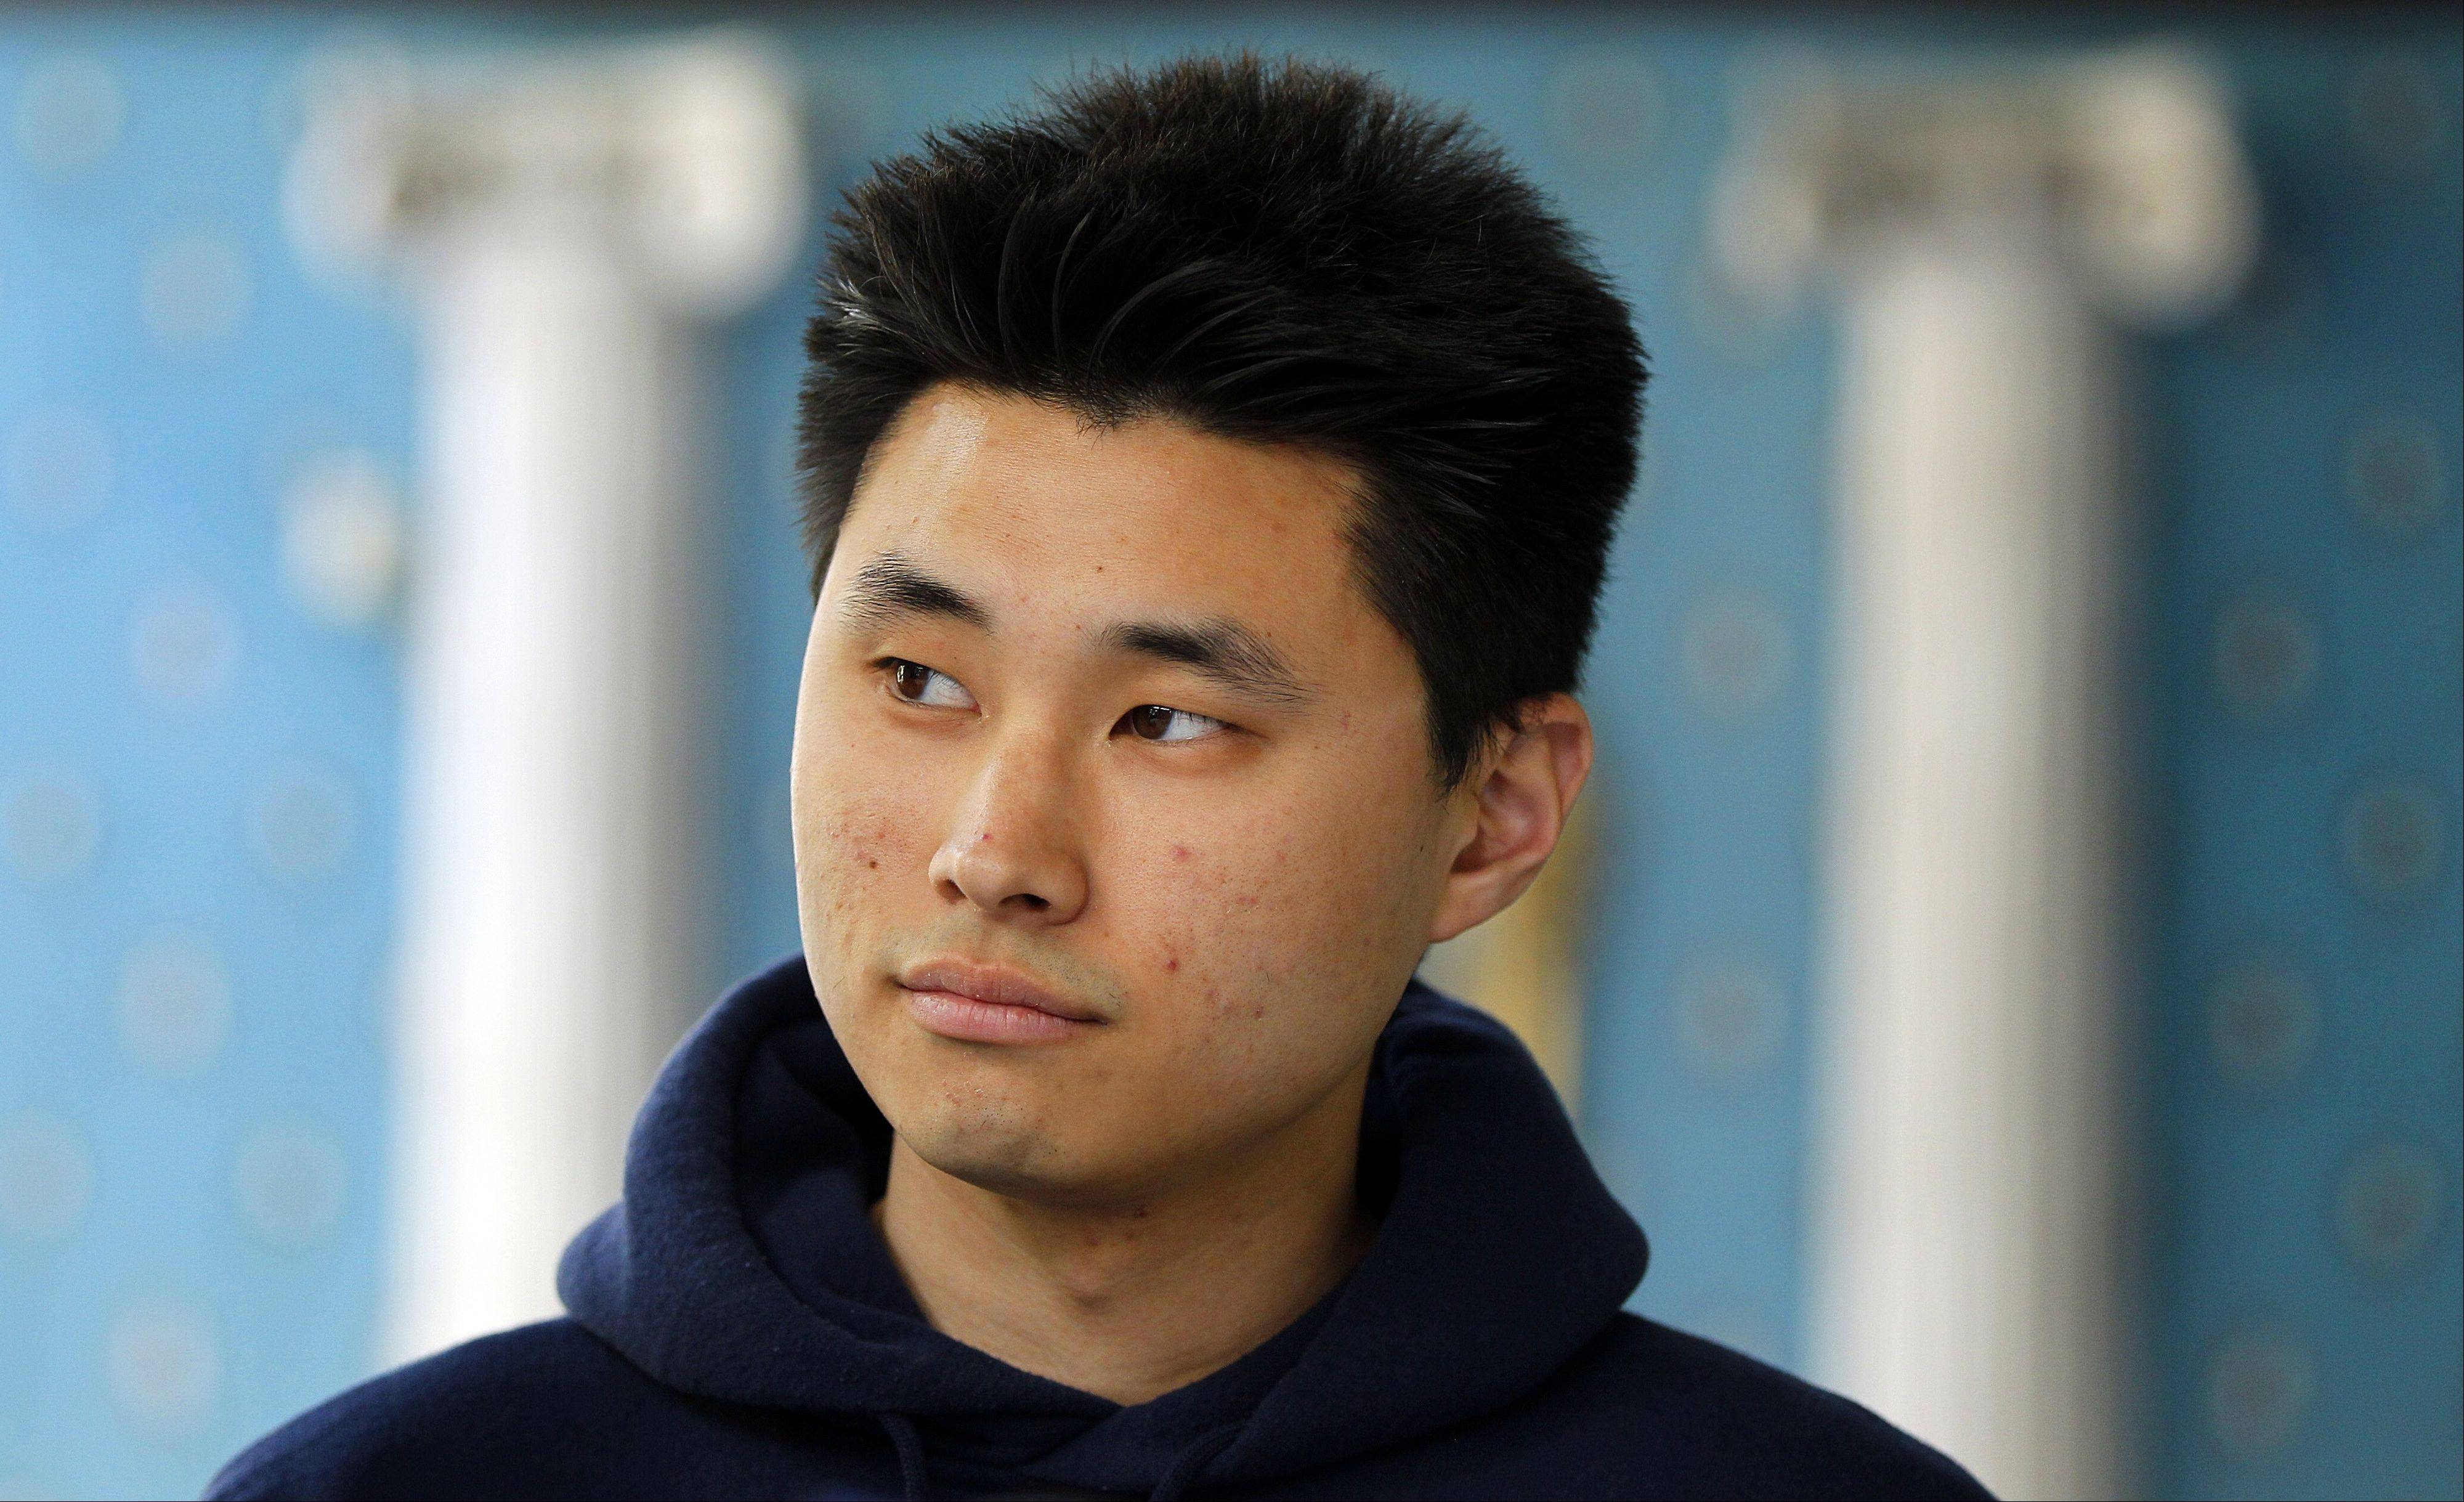 This May 1, 2012, file photo shows Daniel Chong at a news conference where he discussed his detention by the DEA in San Diego. The Justice Department will pay $4.1 million to Chong, who was left in a DEA holding cell for four days without food or water last year, two people familiar with the case told The AP on Tuesday.